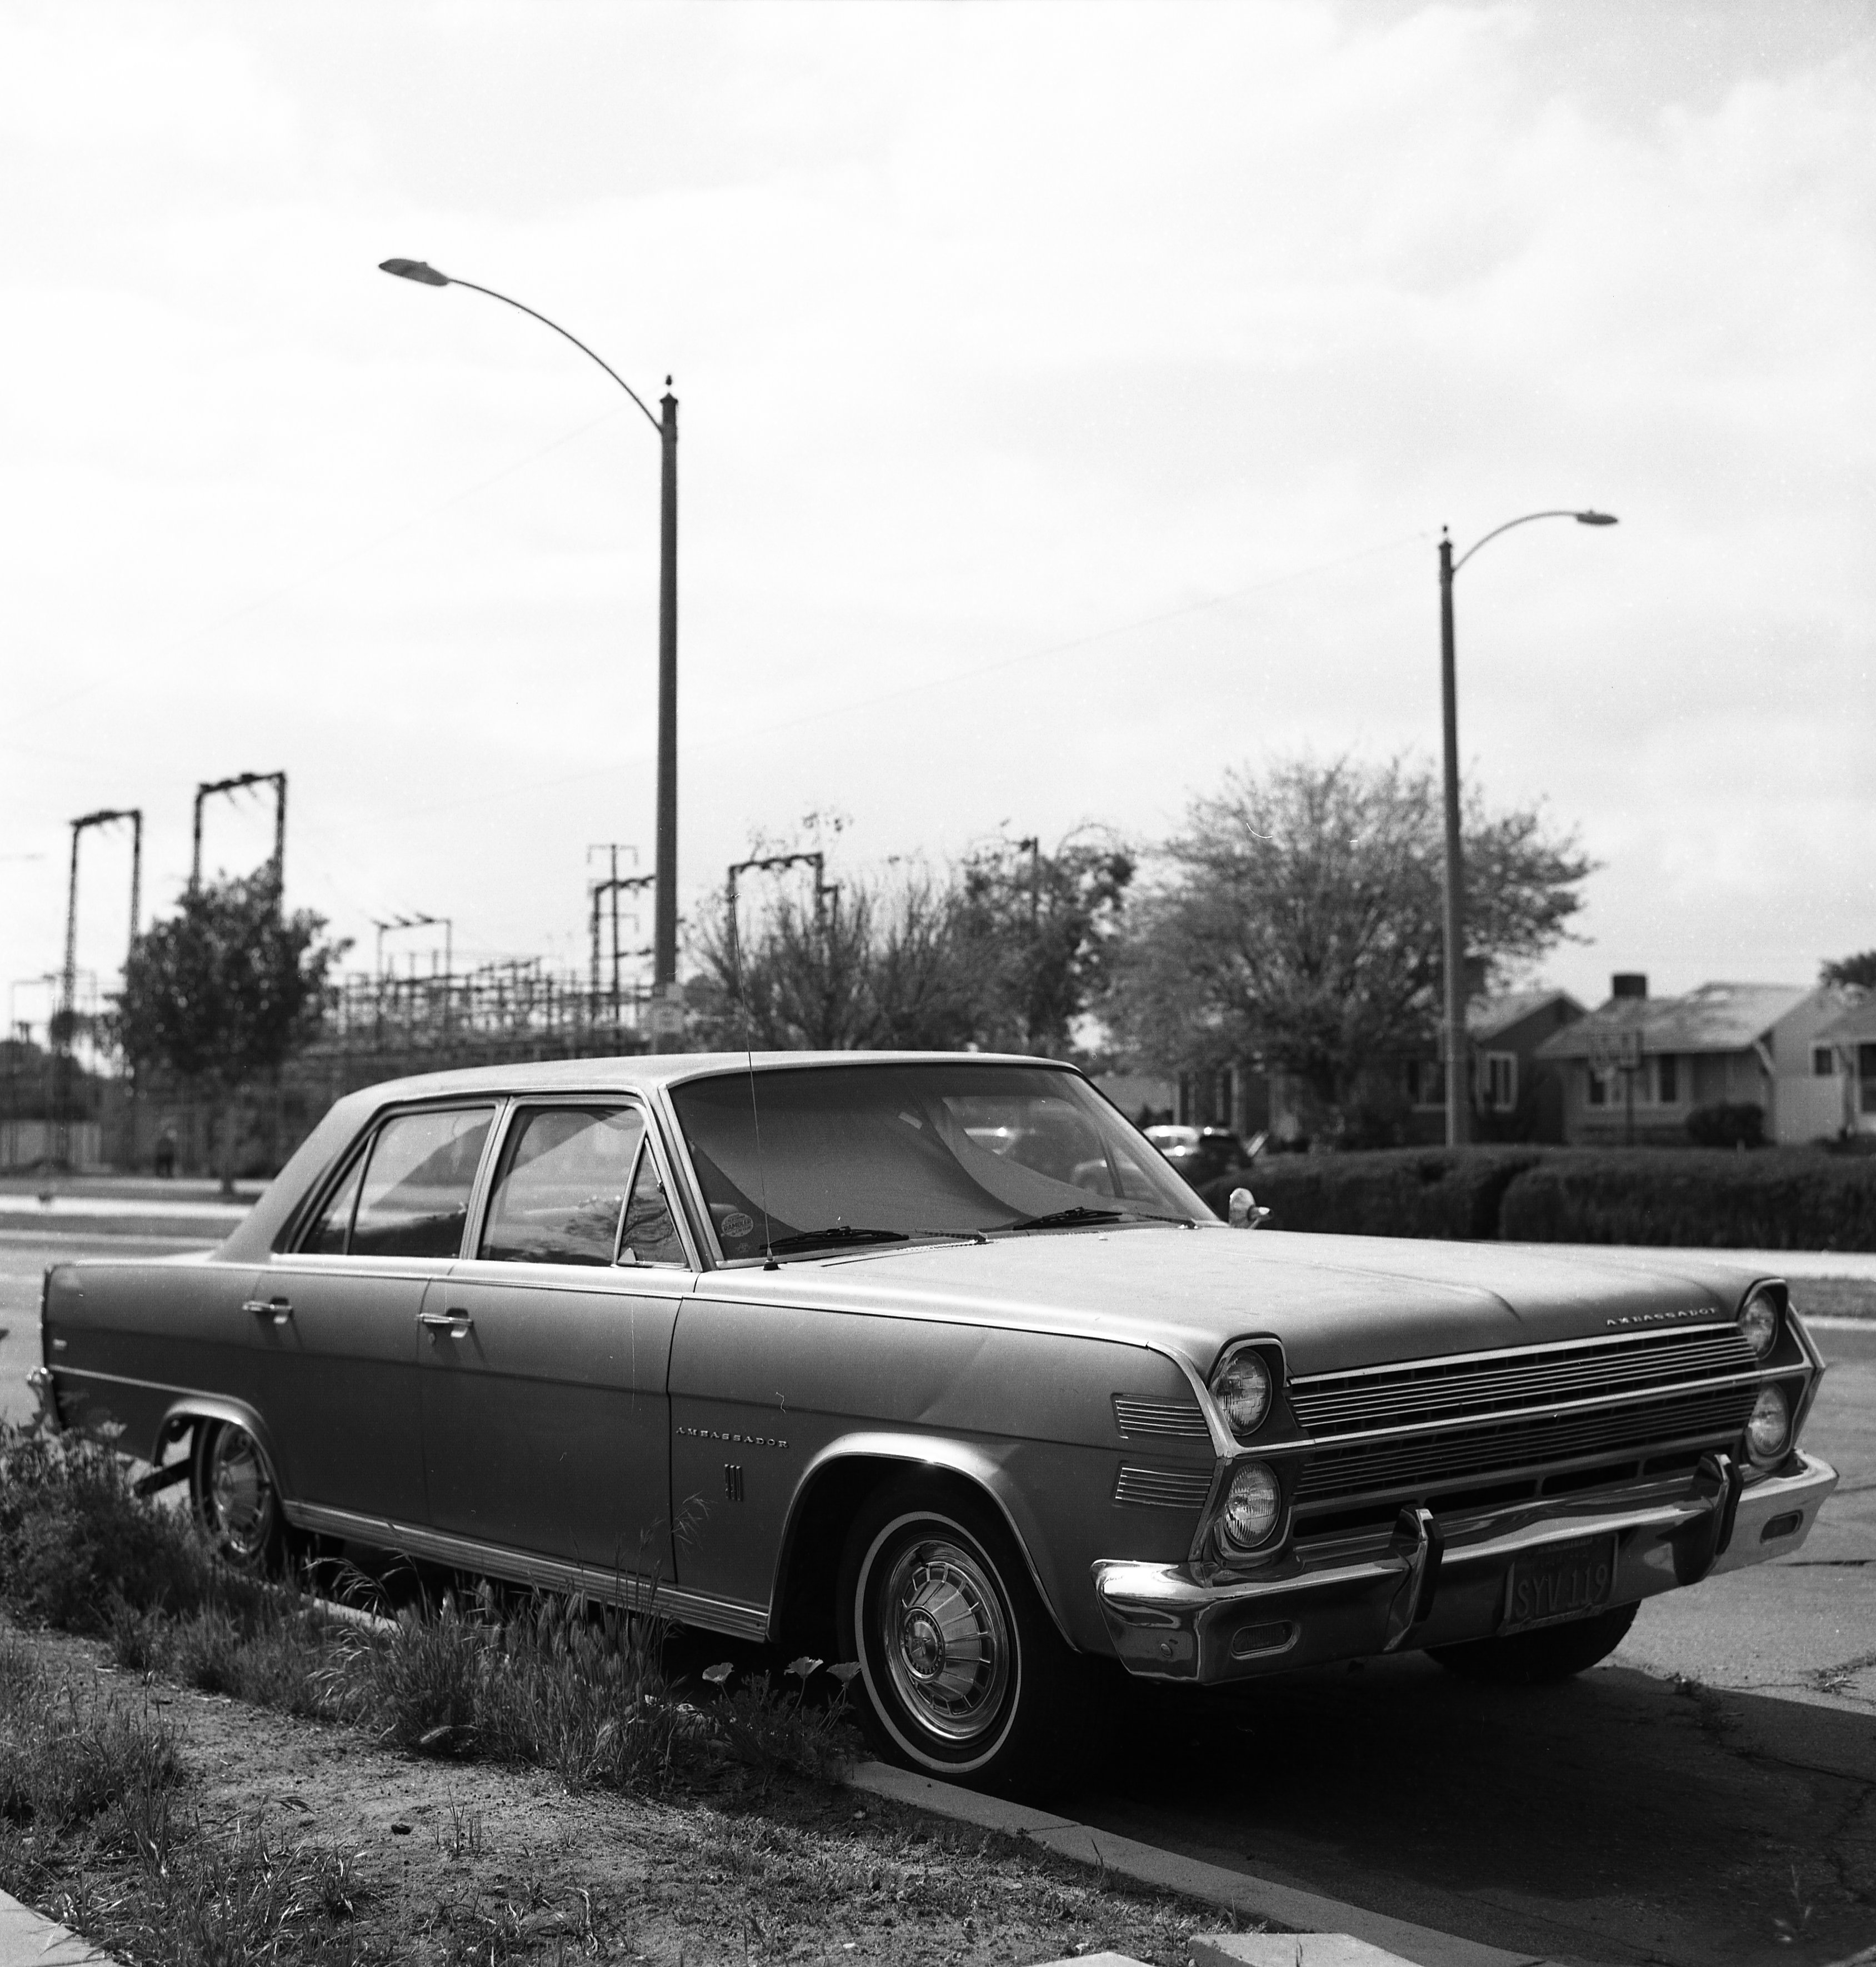 a black and white photograph of an old car by the side of the road